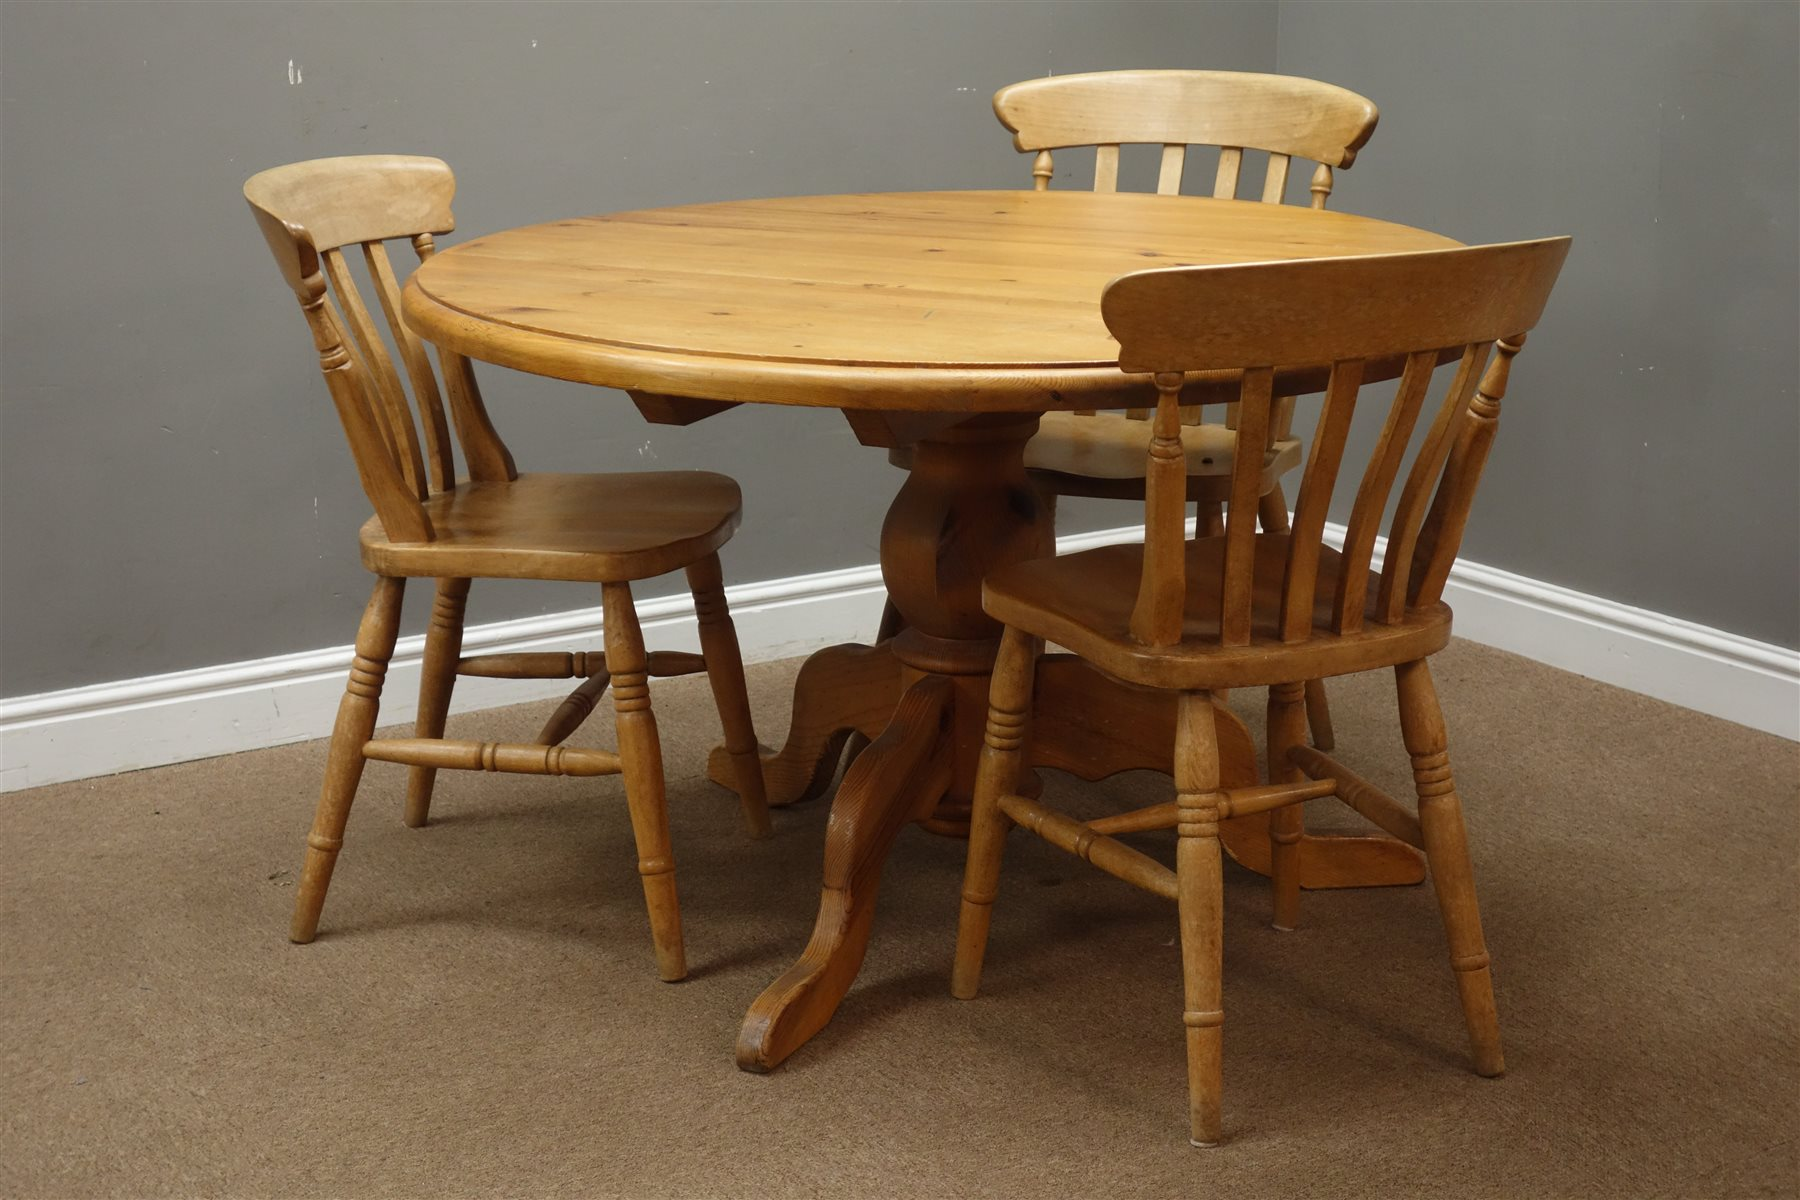 Circular Pine Pedestal Dining Table D120cm H73cm And Three Farmhouse Style Dining Chairs Antiques Interiors